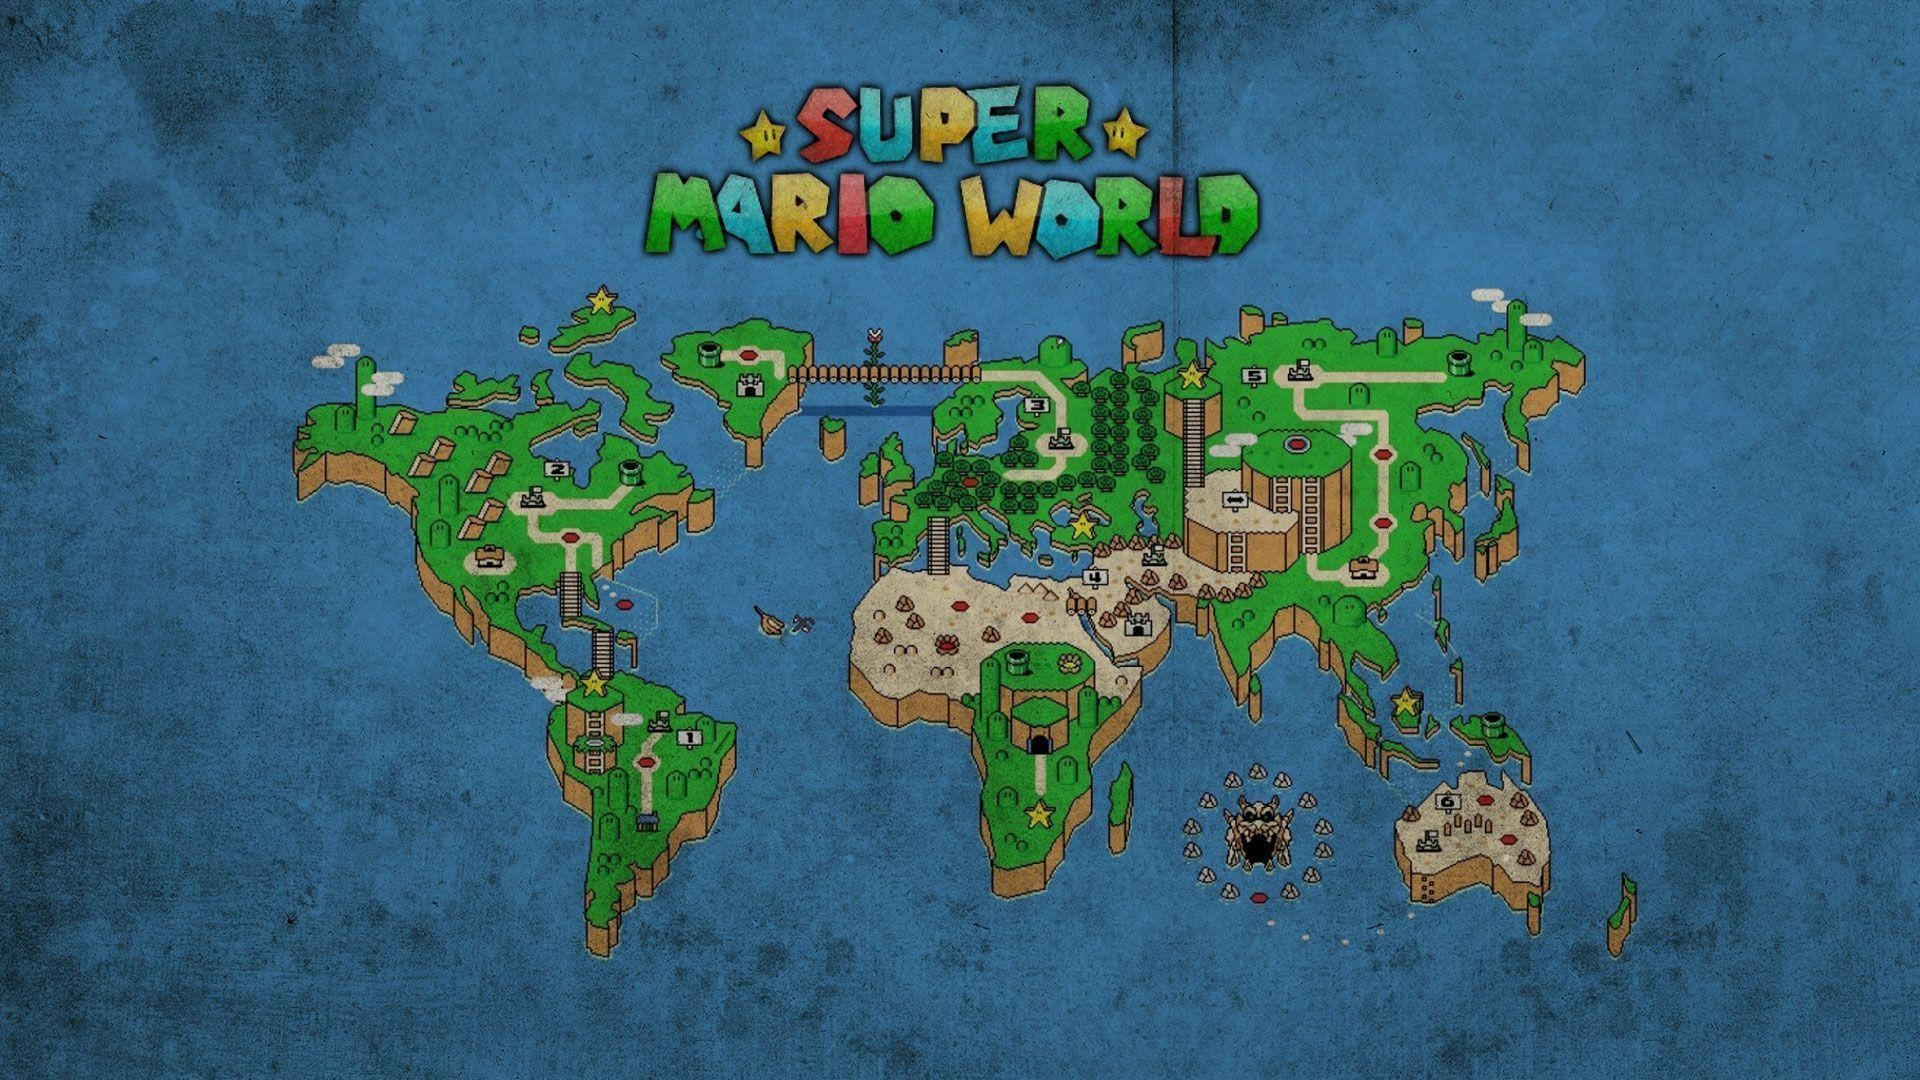 Super mario world map wallpaper 56 images 1920x1080 fonds dcran super mario world tous les wallpapers super mario gumiabroncs Image collections